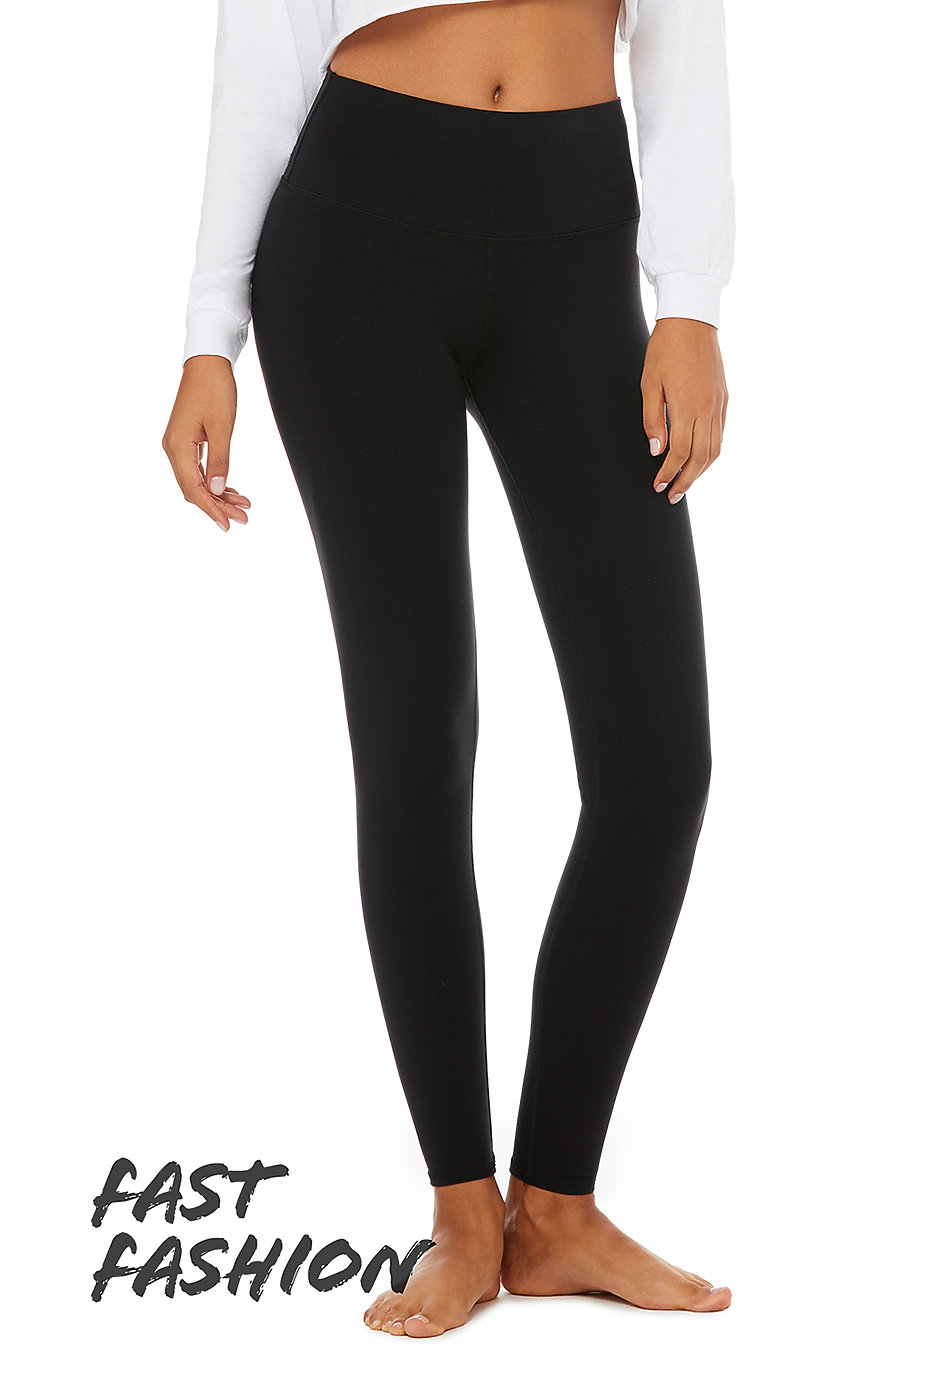 d2601c10b9b7f Wholesale Leggings |High Waisted Leggings | Womens Activewear ...